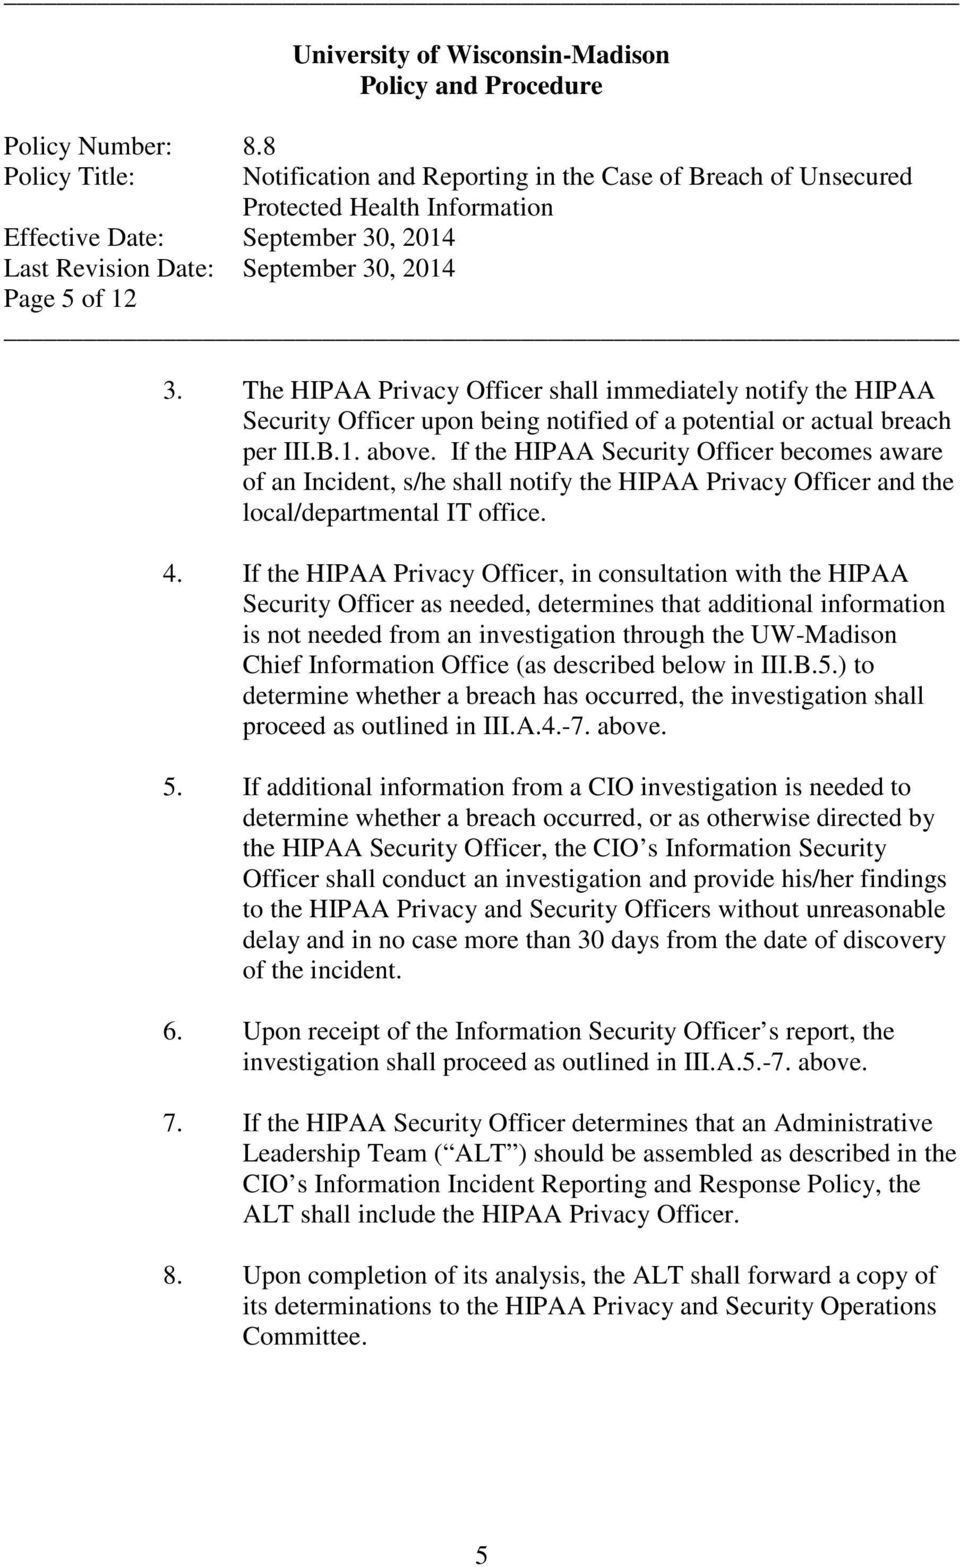 If the HIPAA Privacy Officer, in consultation with the HIPAA Security Officer as needed, determines that additional information is not needed from an investigation through the UW-Madison Chief